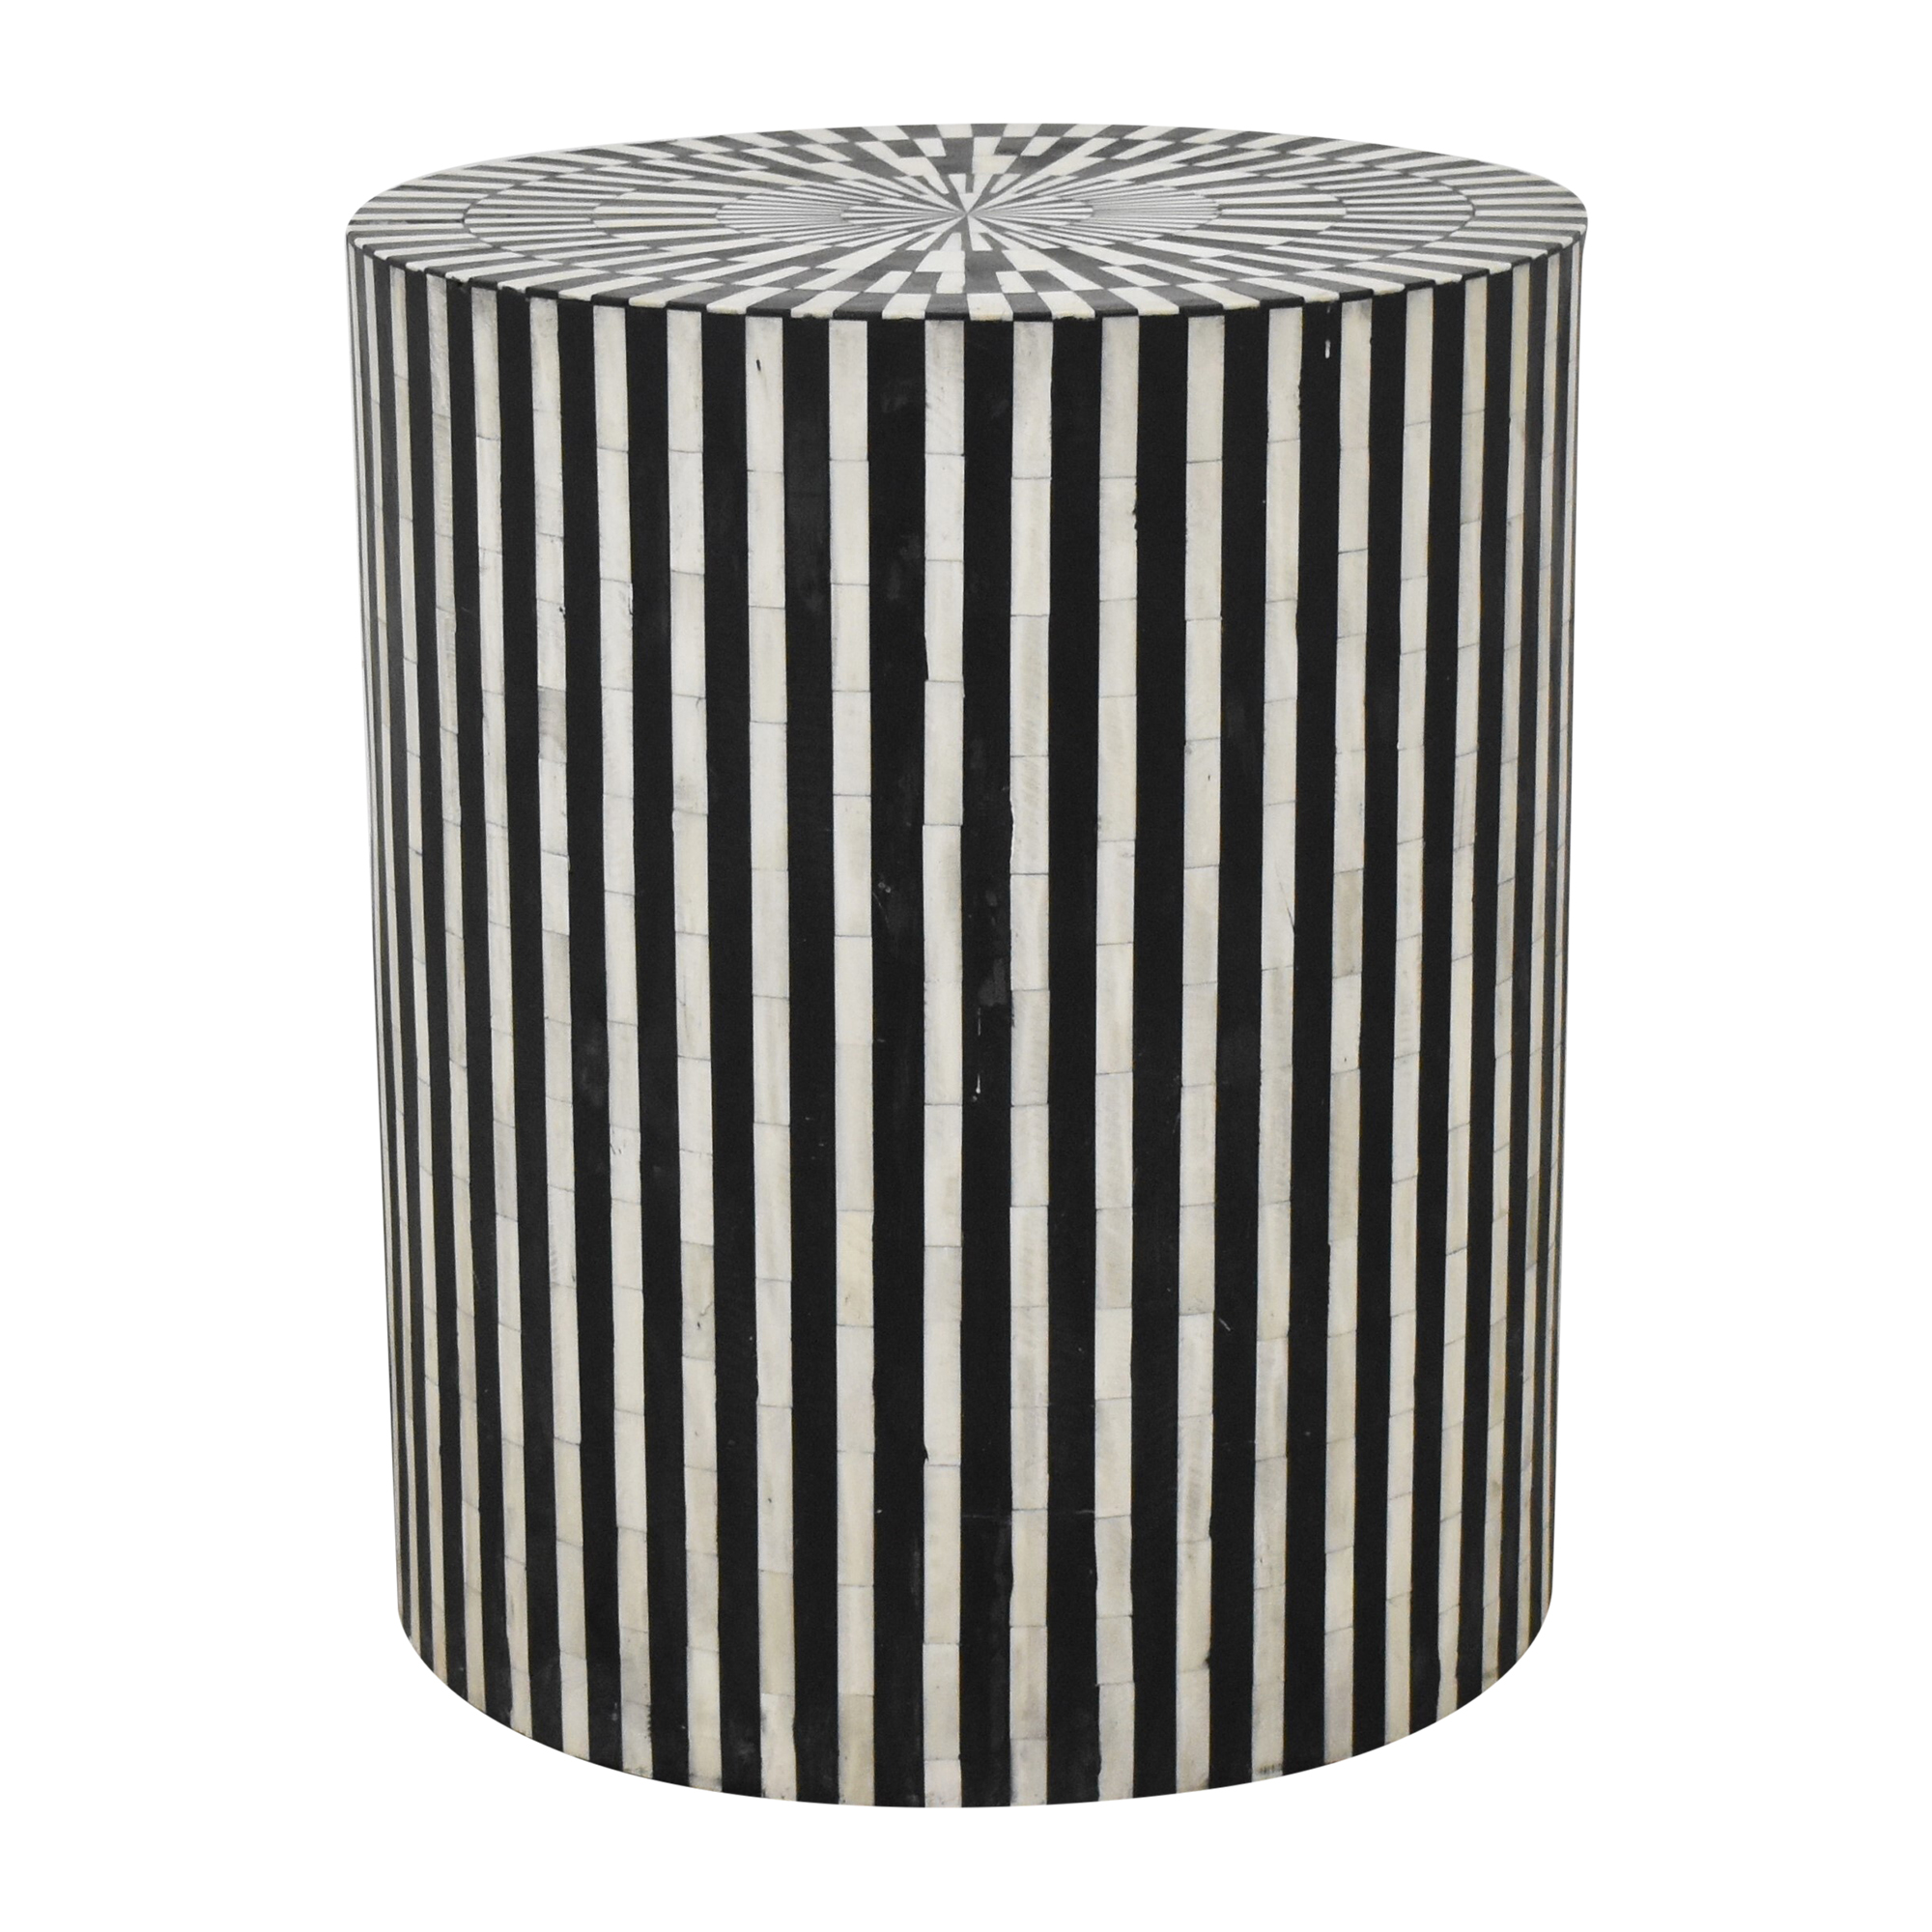 Anthropologie Anthropologie Rounded Inlay Side Table pa